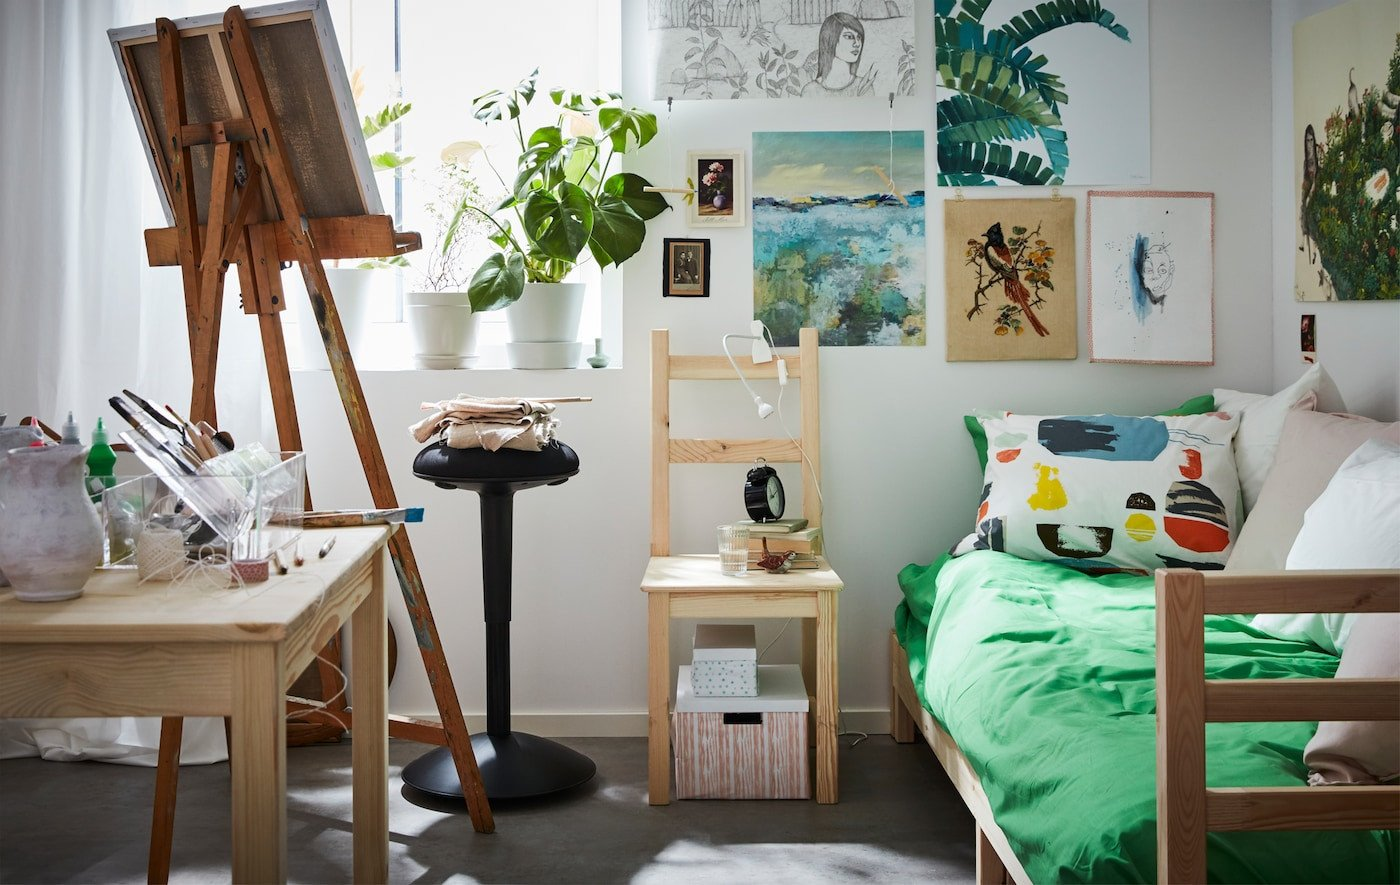 Room Divider Ideas for Bedroom Inspirational Creative and Cute Dorm Room Ideas Ikea